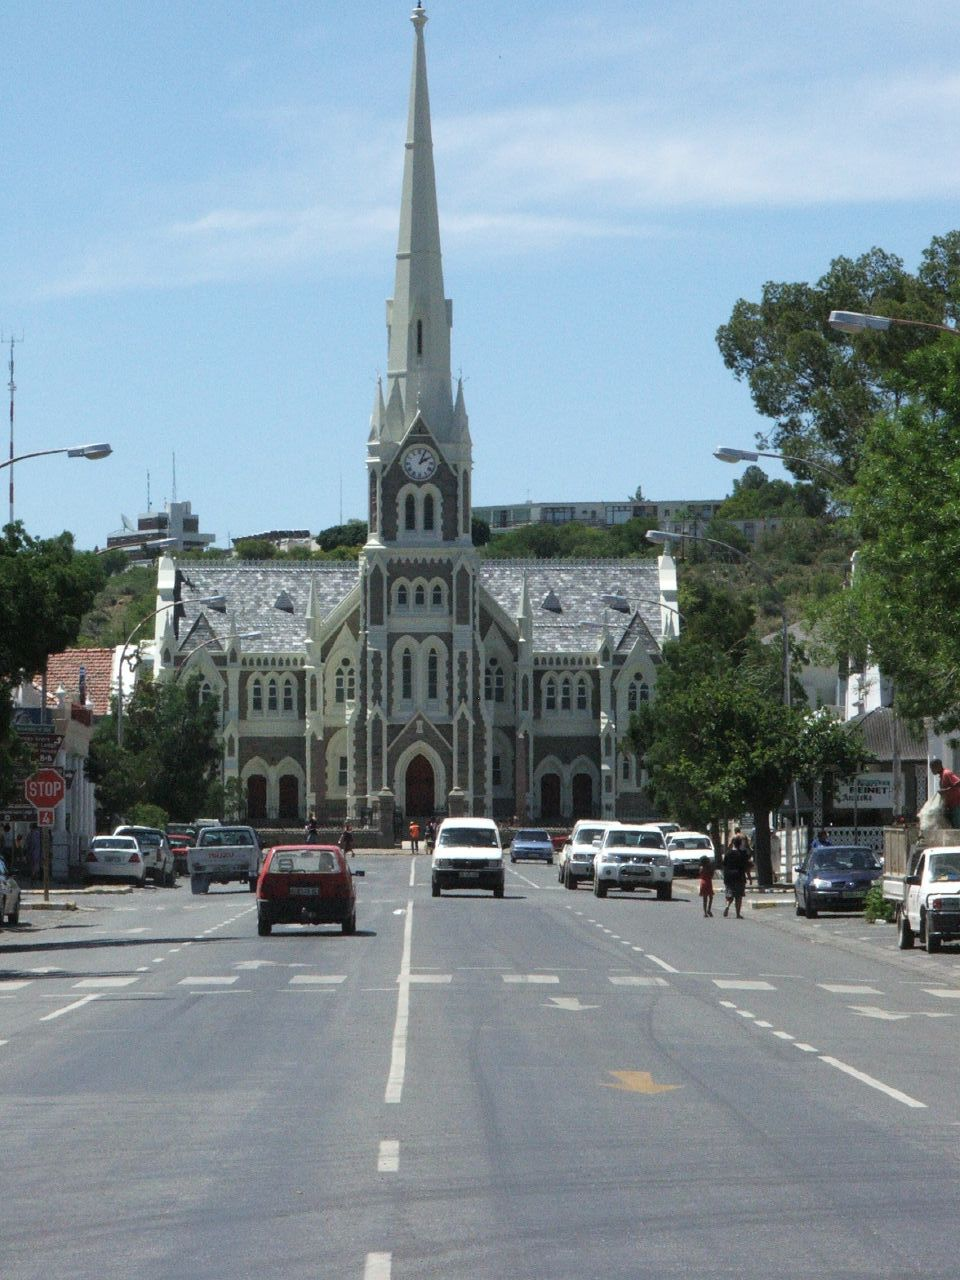 Graaff-Reinet South Africa  city photo : Description Graaff Reinet Church, South Africa